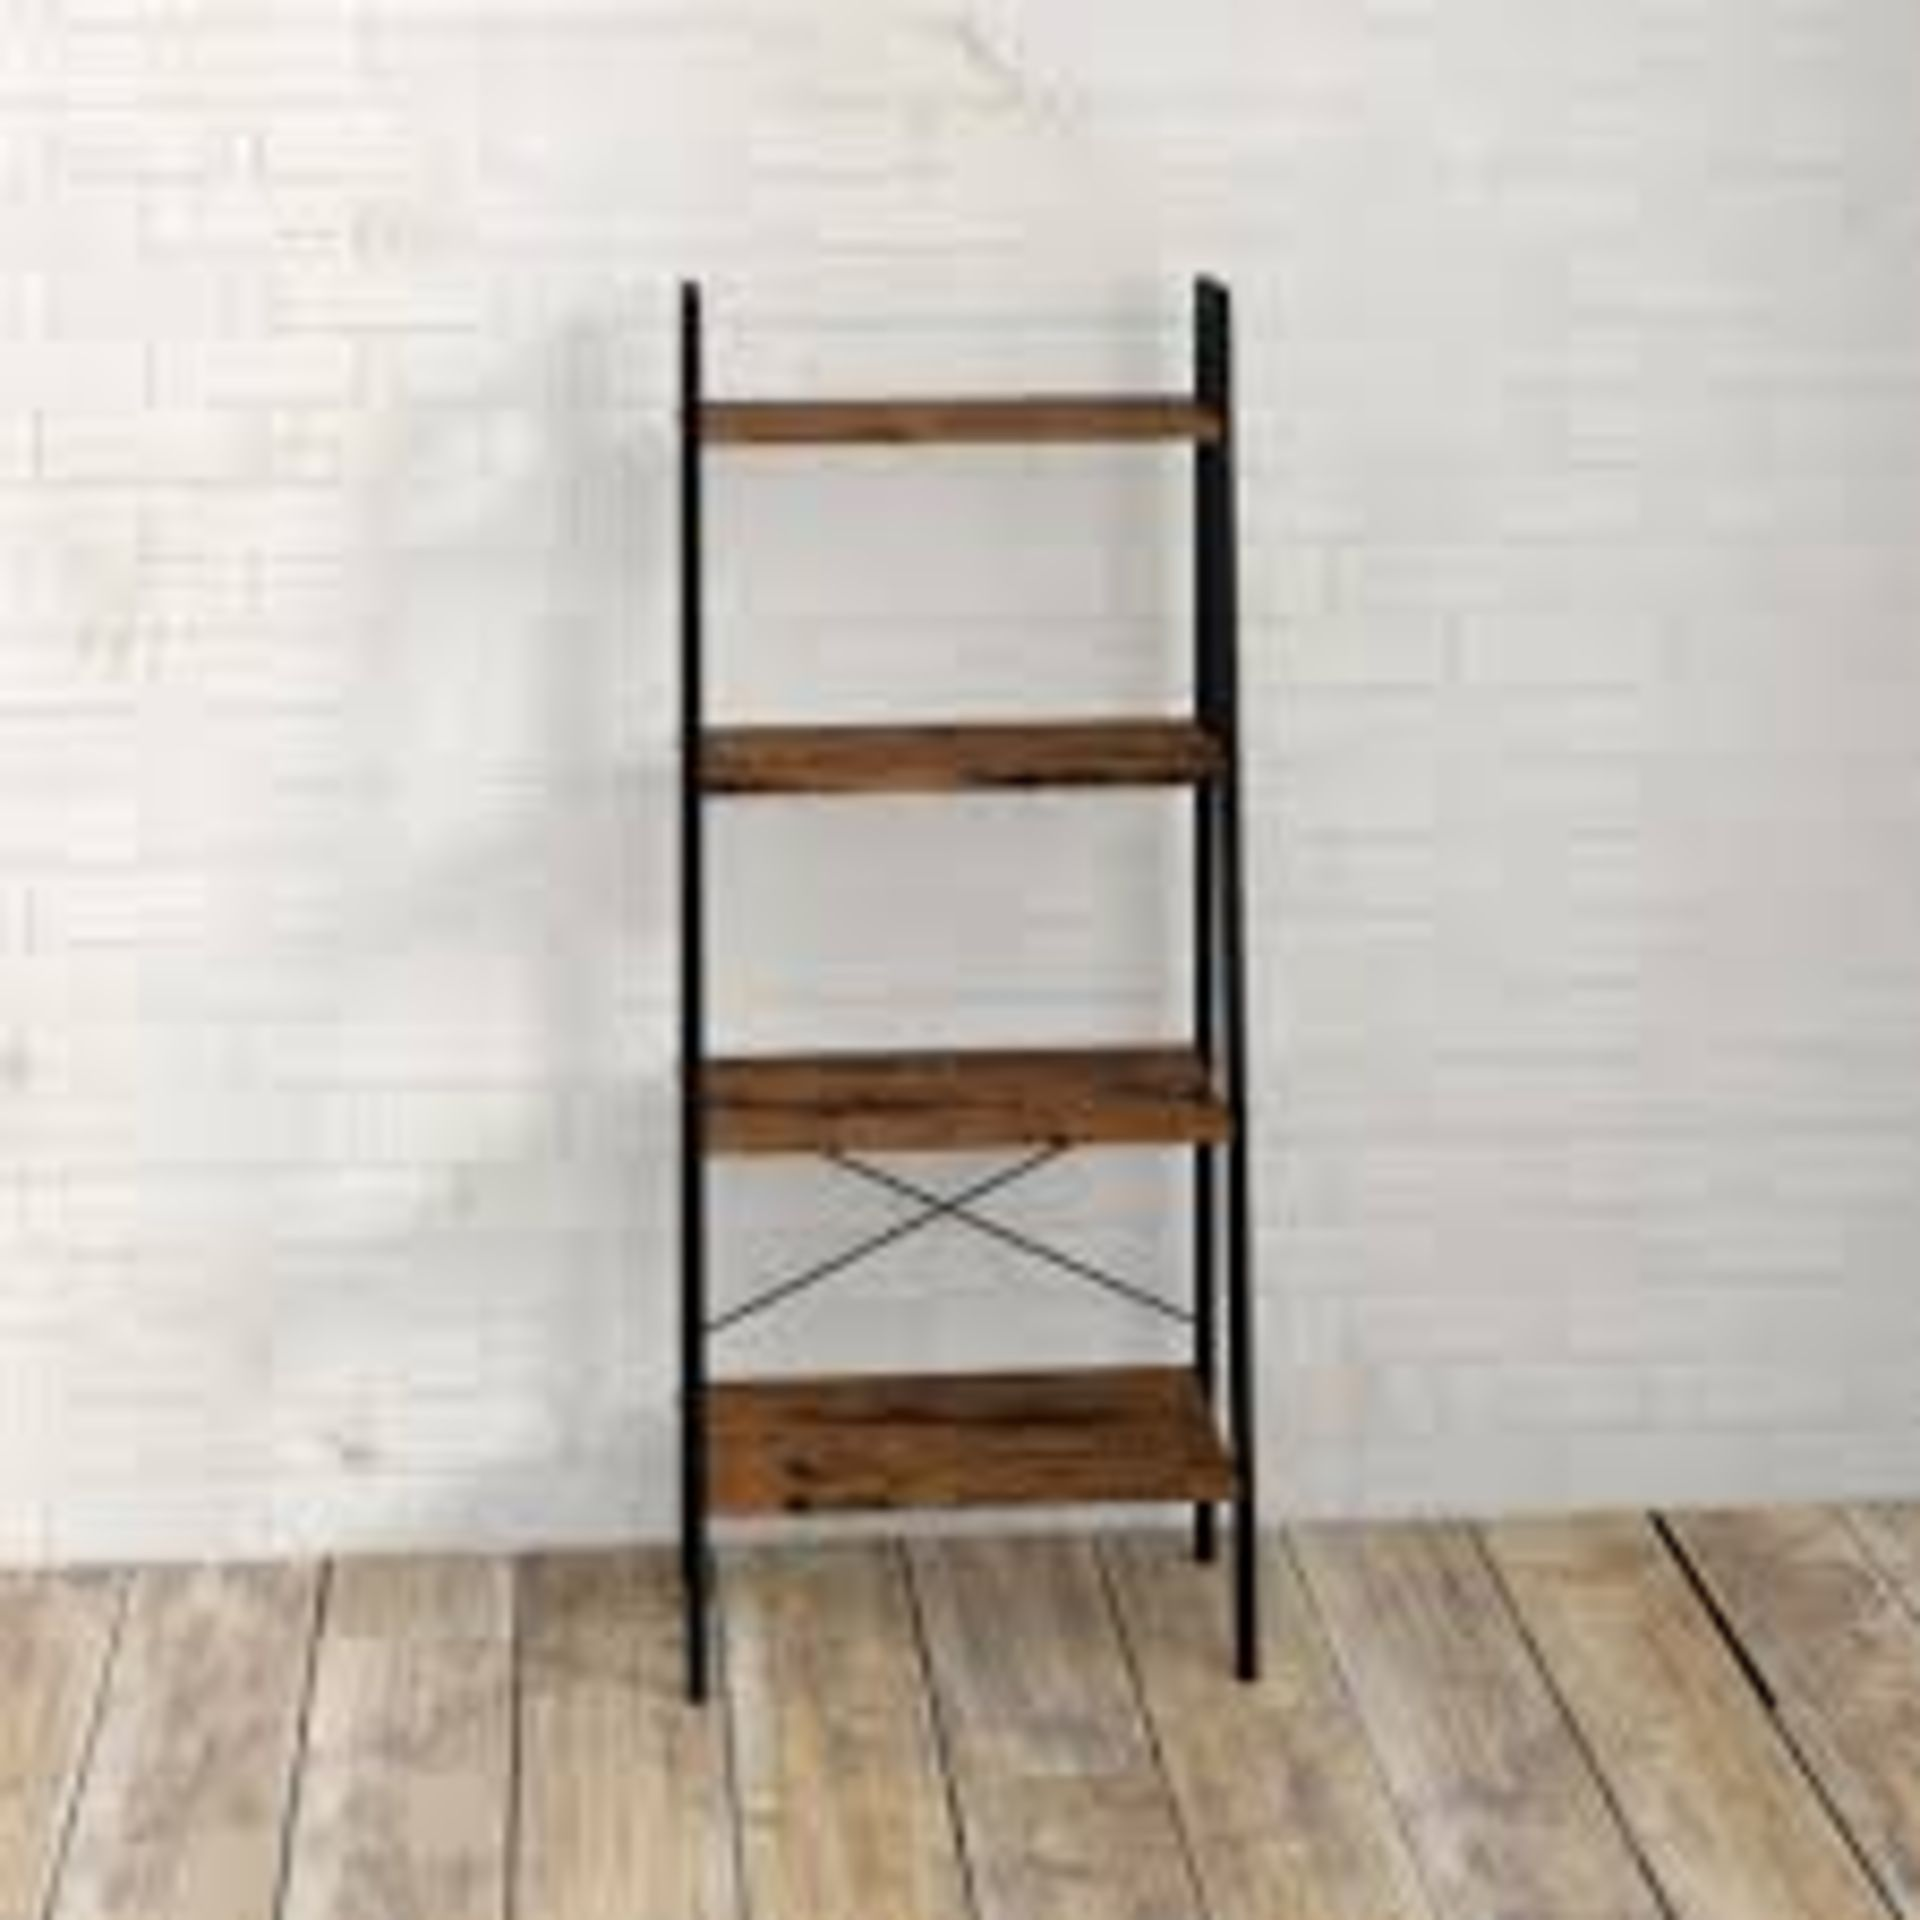 Lot 523 - Boxed, Wrlliston Forge, 4 Tier Bookshelf, rrp£65.00 (17771) (Public Viewing and Appraisals